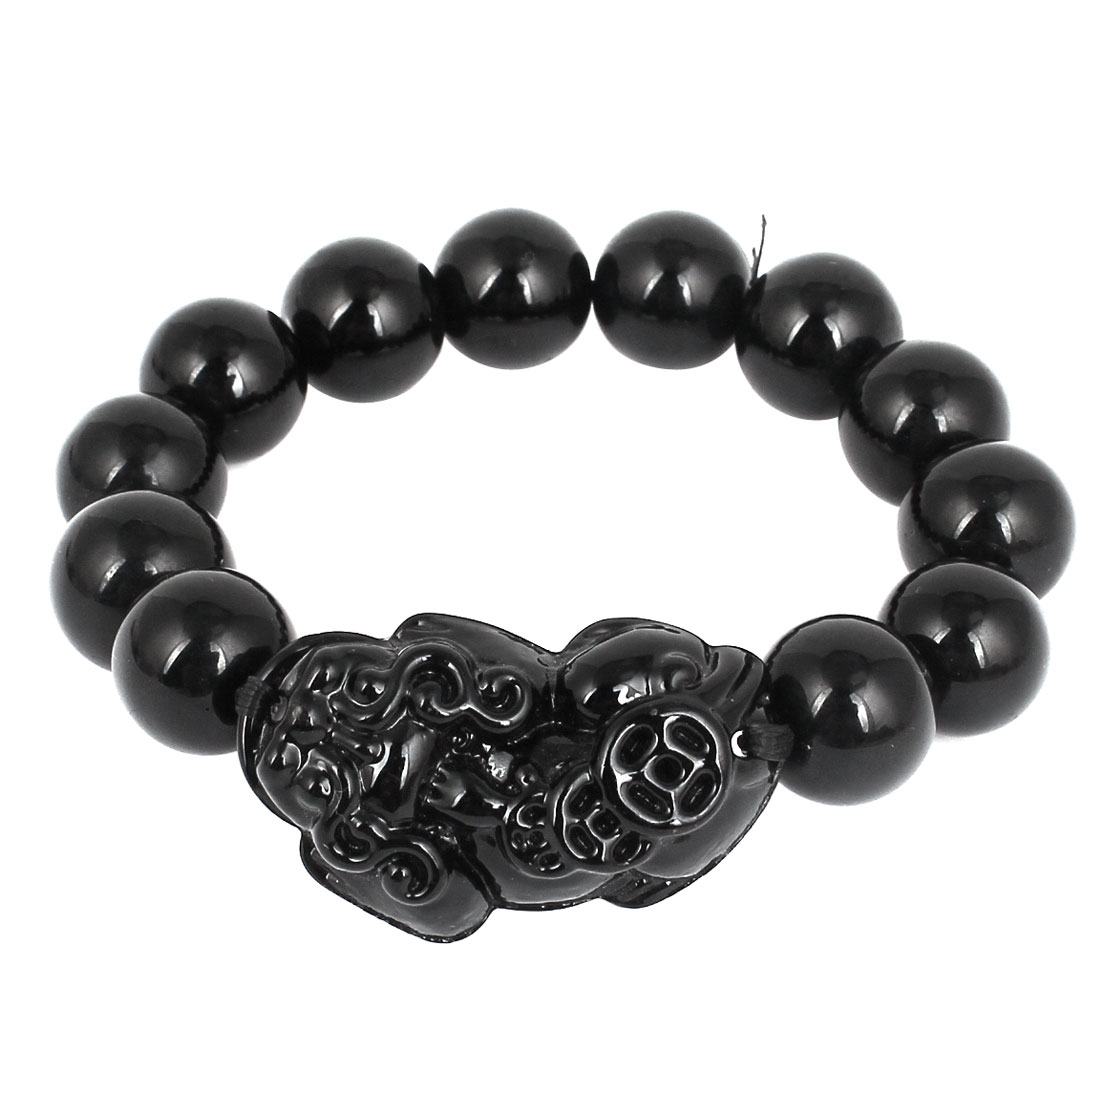 Carved Brave Troops Decor Buddha Buddhist Beads Elastic Bracelet Black